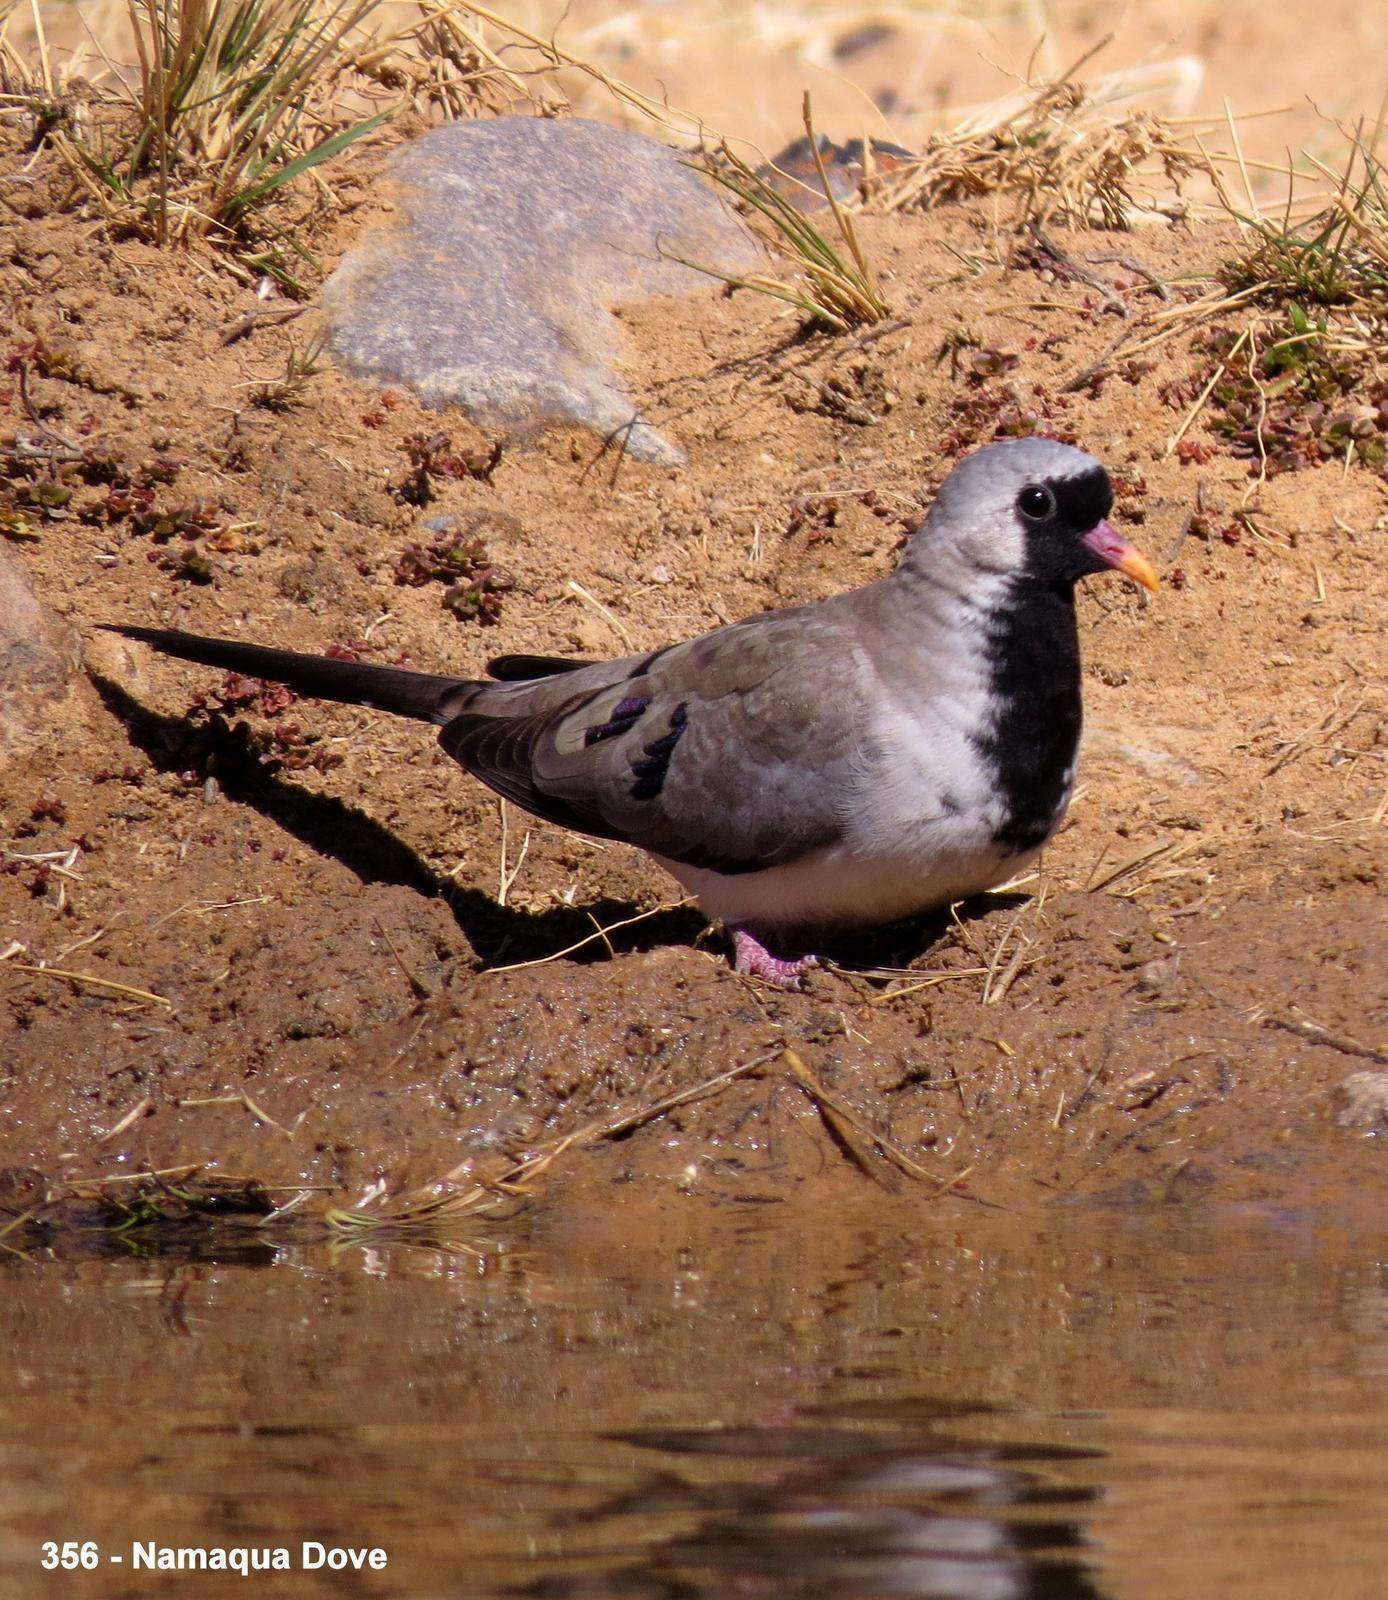 Namaqua Dove Photo by Richard  Lowe